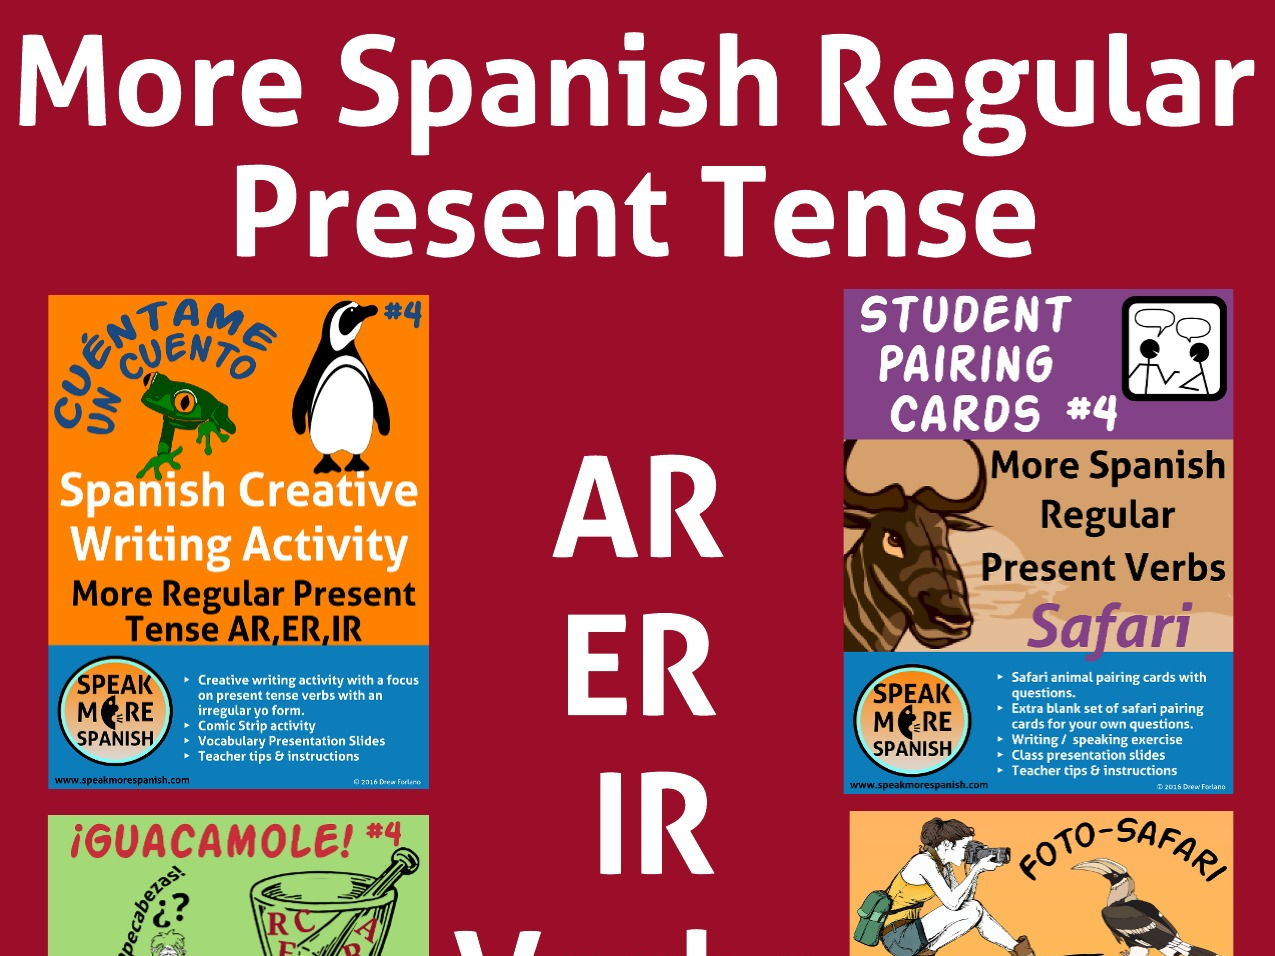 MORE Spanish Regular Present Tense BUNDLE #4. Presente Verbos Regulares AR,ER,IR